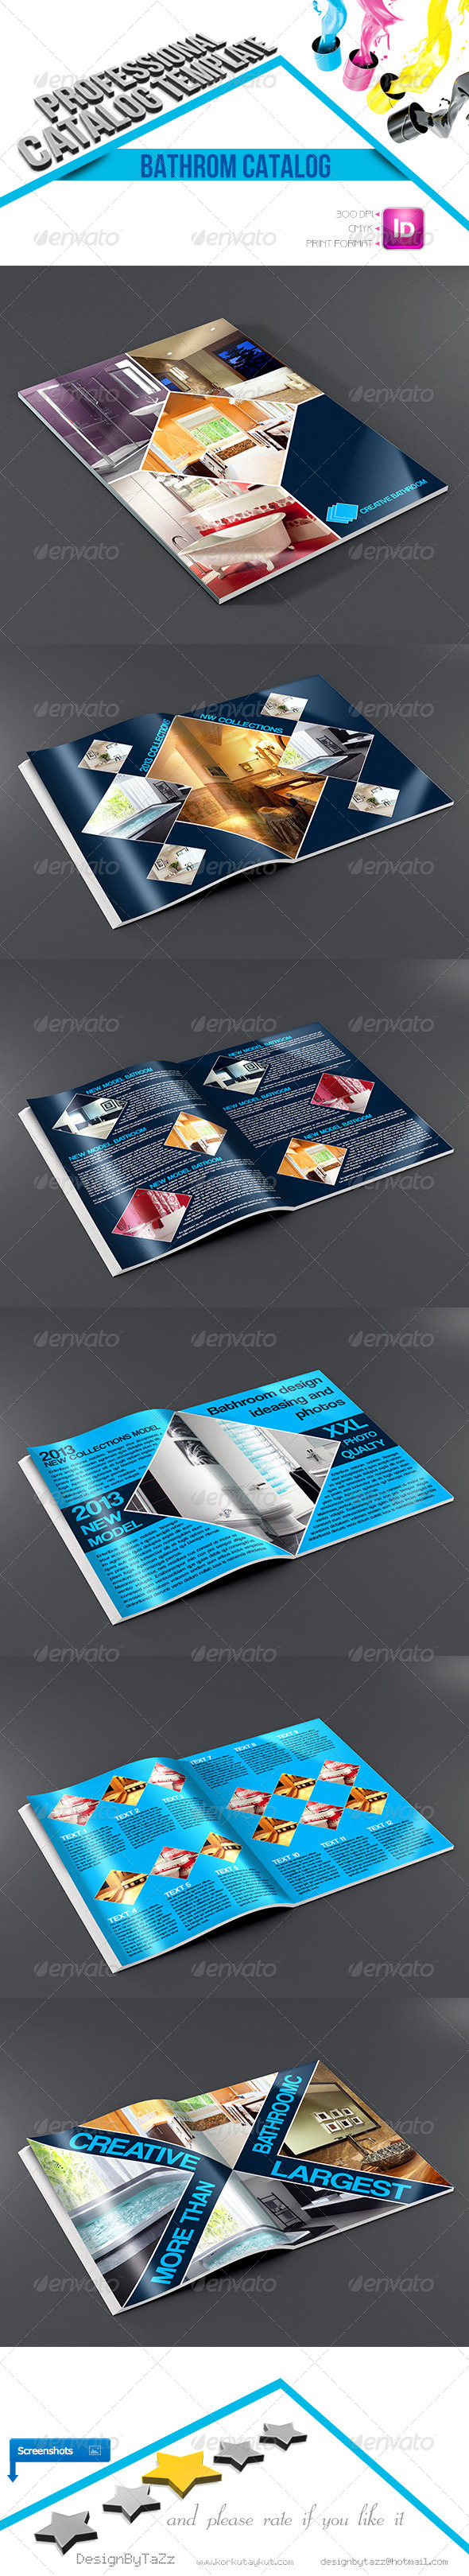 GraphicRiver Creative Bathroom Catalog Template 4629185